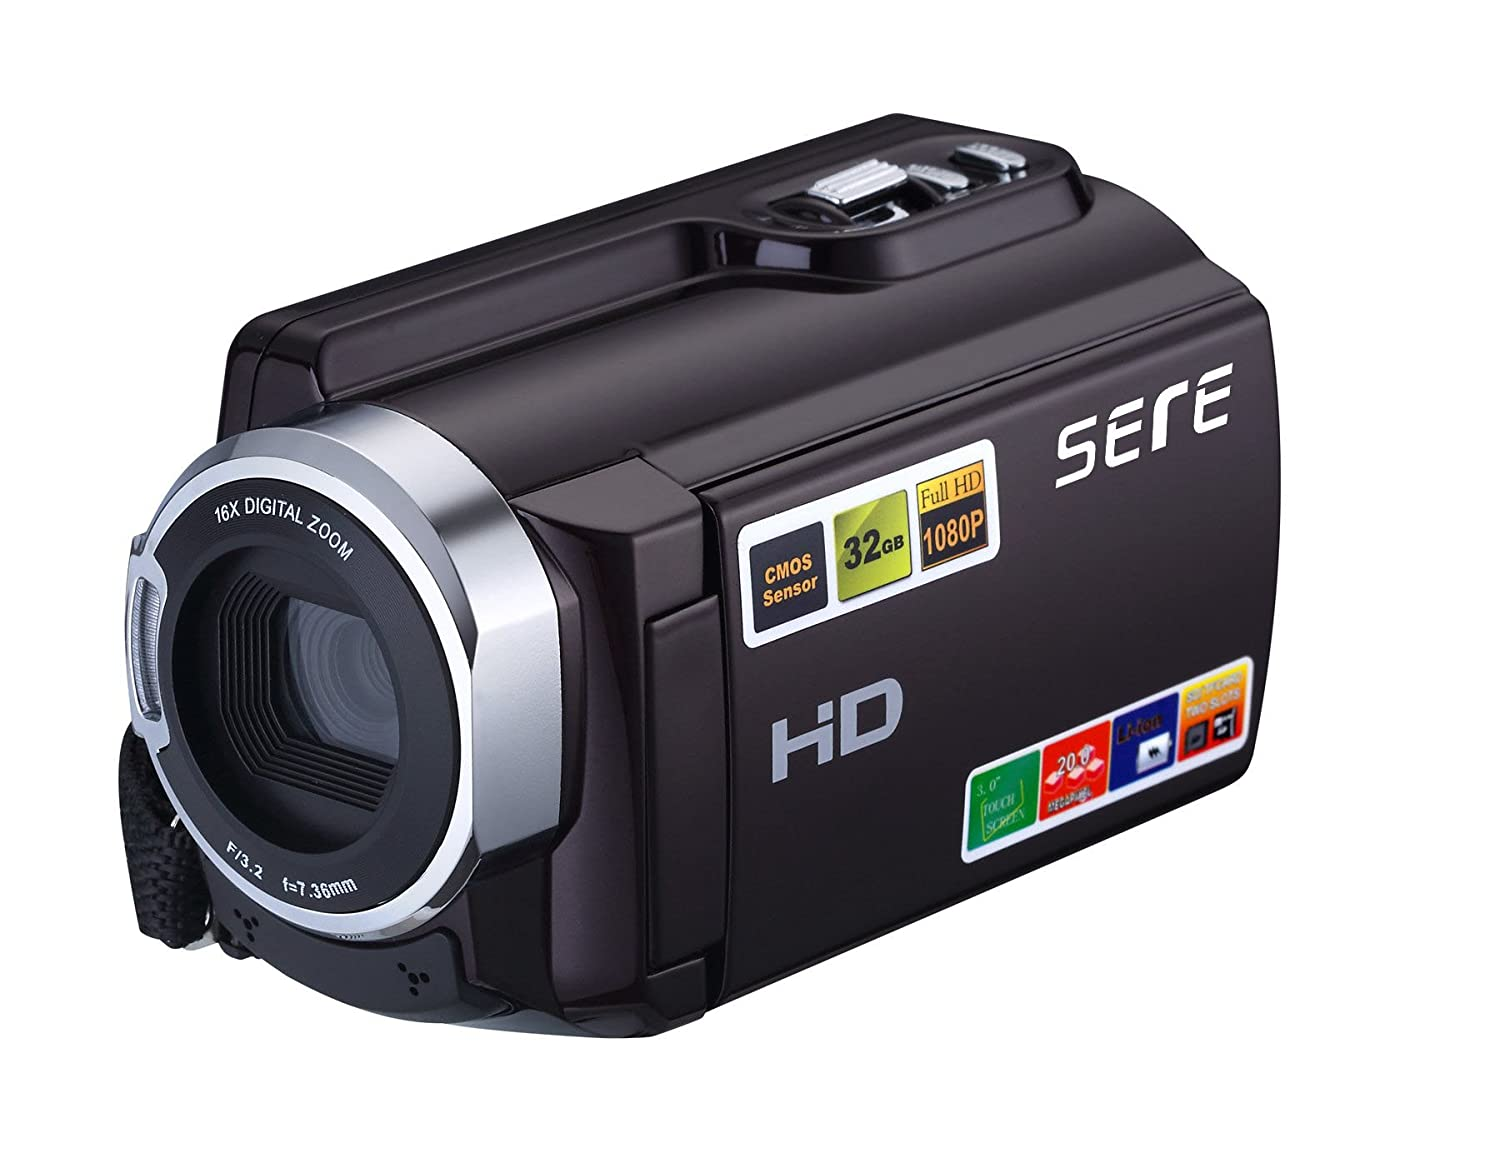 Sereer HDV-501 FHD 1080P Camcorders WIFI Connection 60FPS Dual SD Slot Night Vision External Battery 20MP 16X Digital Zoom 3 Inch Touch Screen Camera